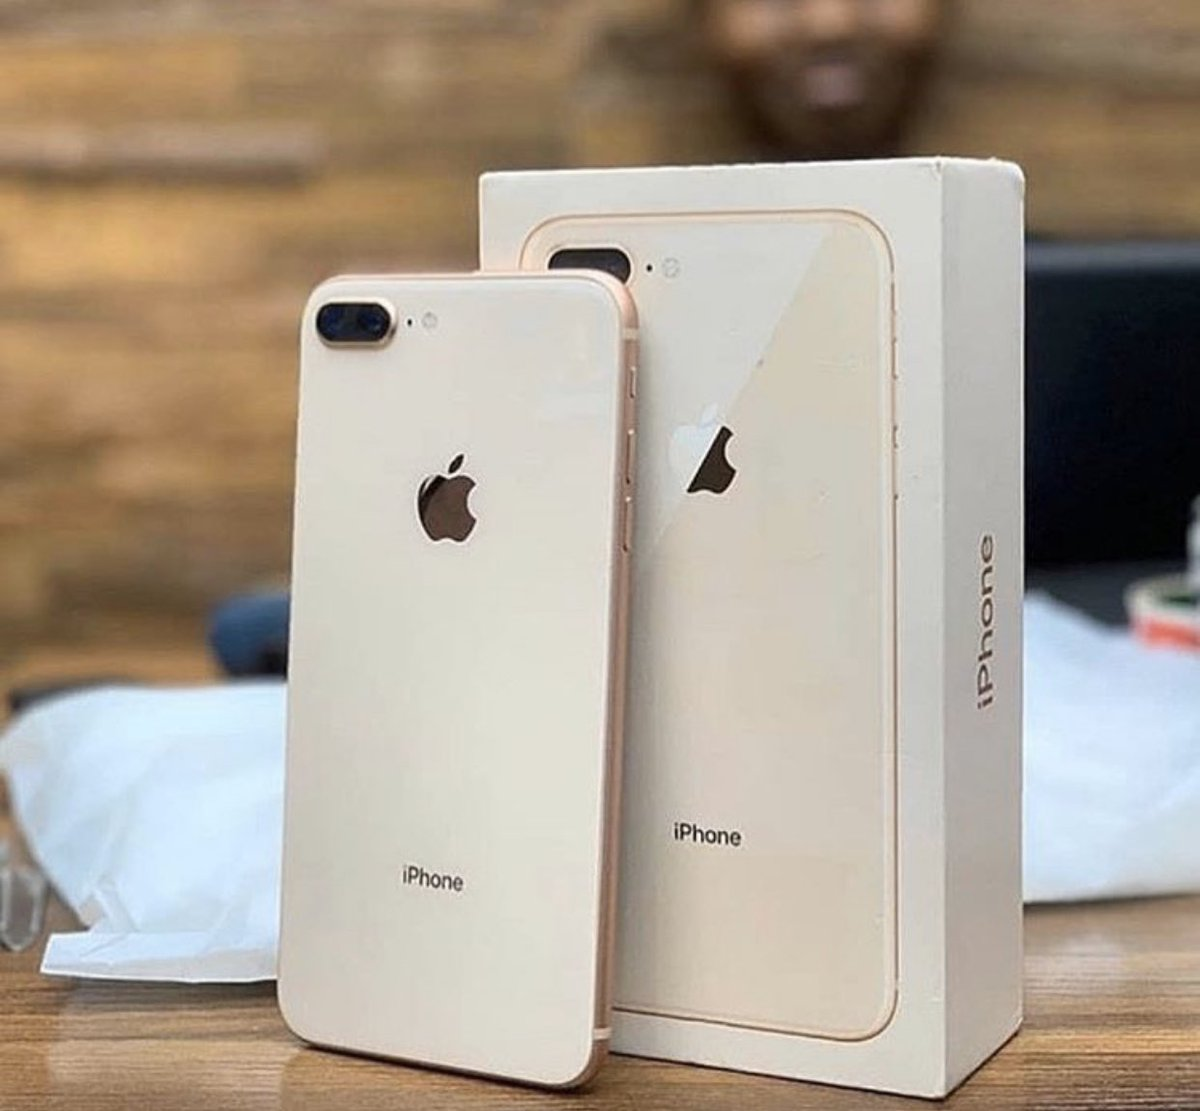 Iphone 8+  Brand new  64GIG  160,000 Place your order  Shop live or online  Nationwide delivery   Dm/Call:07032655719 Refer Your Family and Friends To patronize us  Thank you   PLEASE RETWEET <br>http://pic.twitter.com/diGOz5FuBK